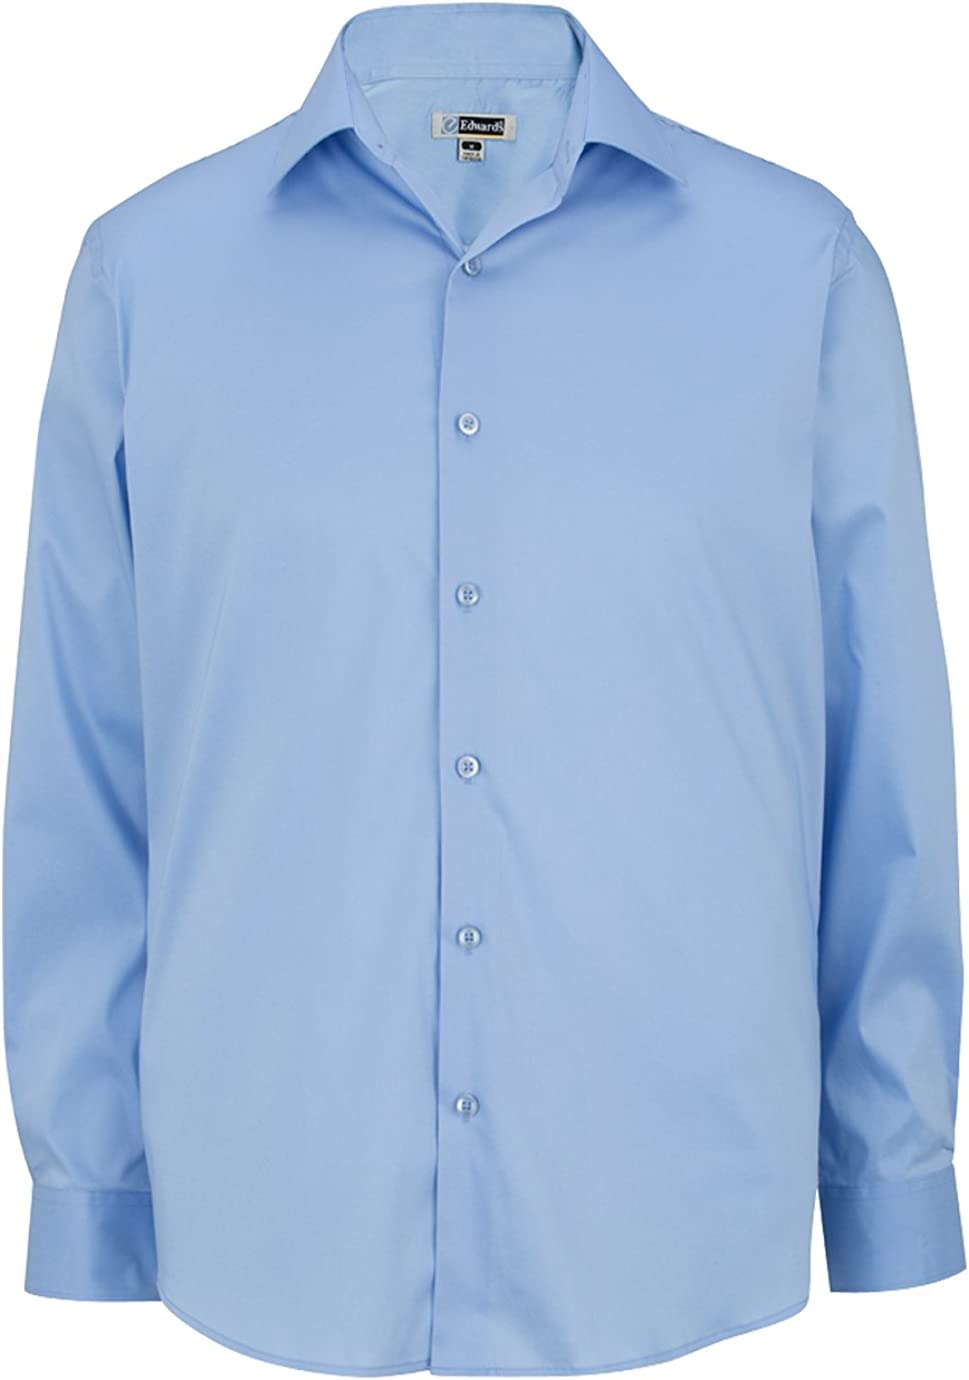 Ed Garments Men's Cotton/Poly/Spandex Tailored Fit Spread Collar Dress Shirt